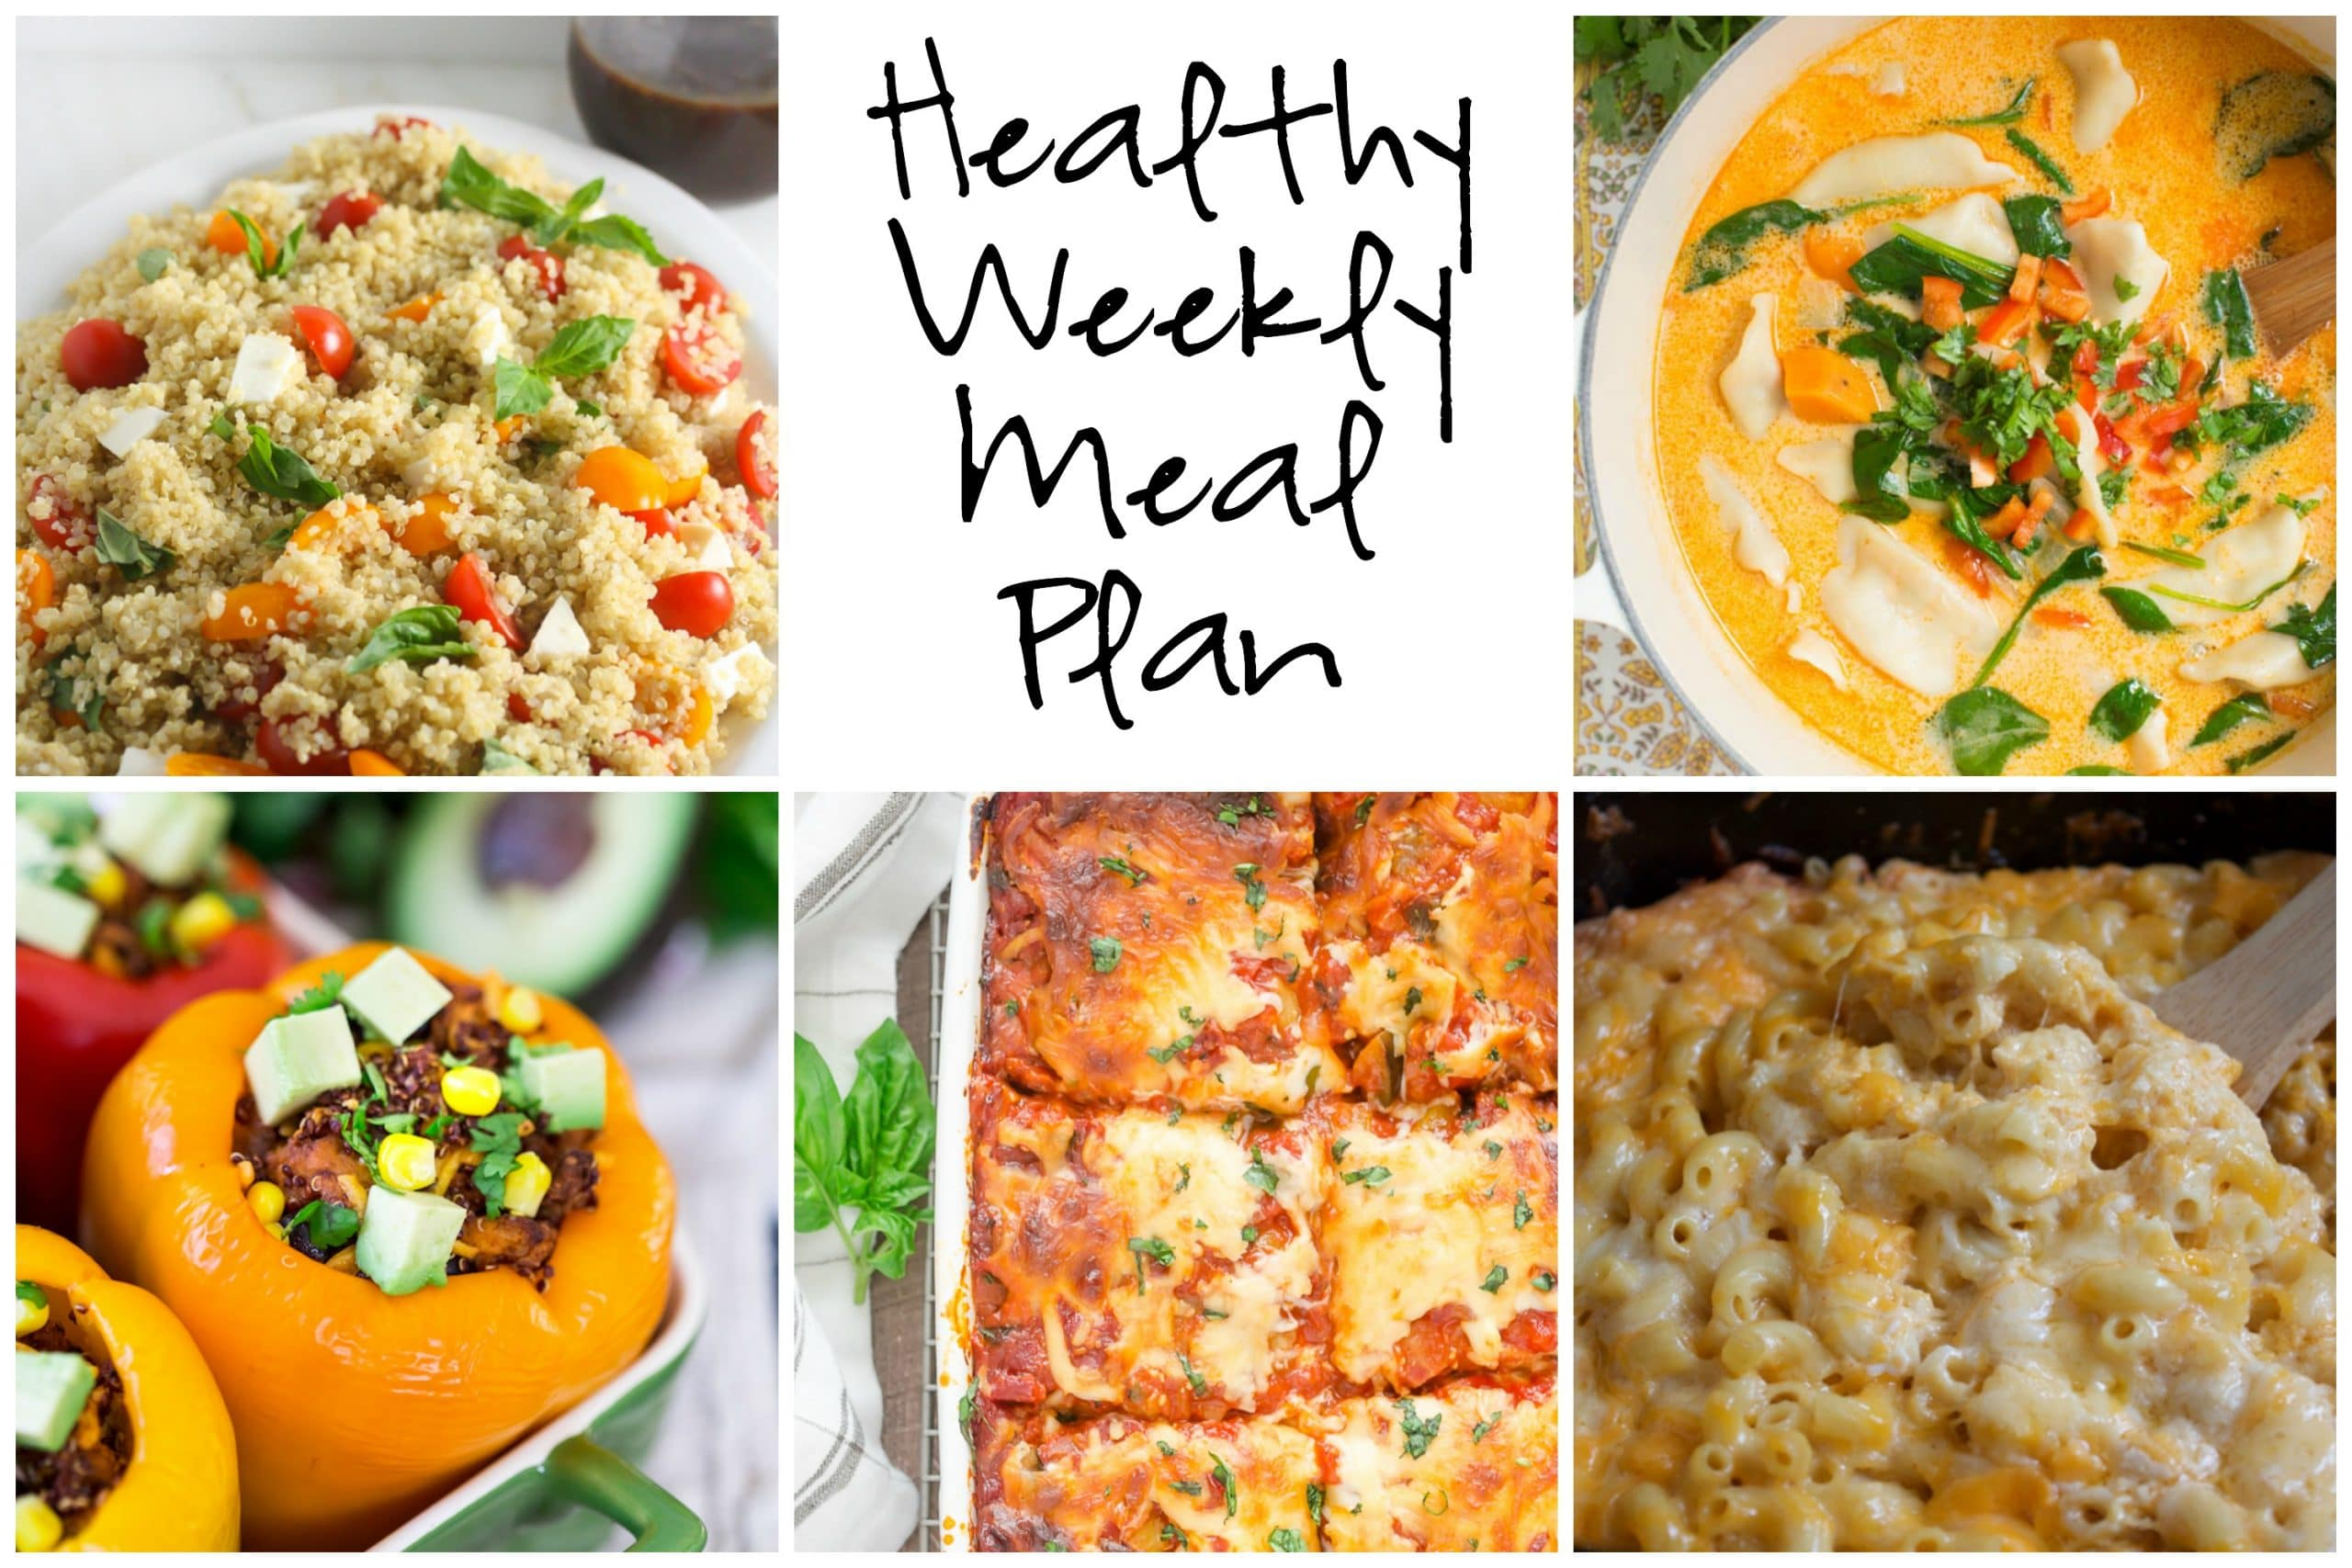 Healthy Weekly Meal Plan 2.11.16